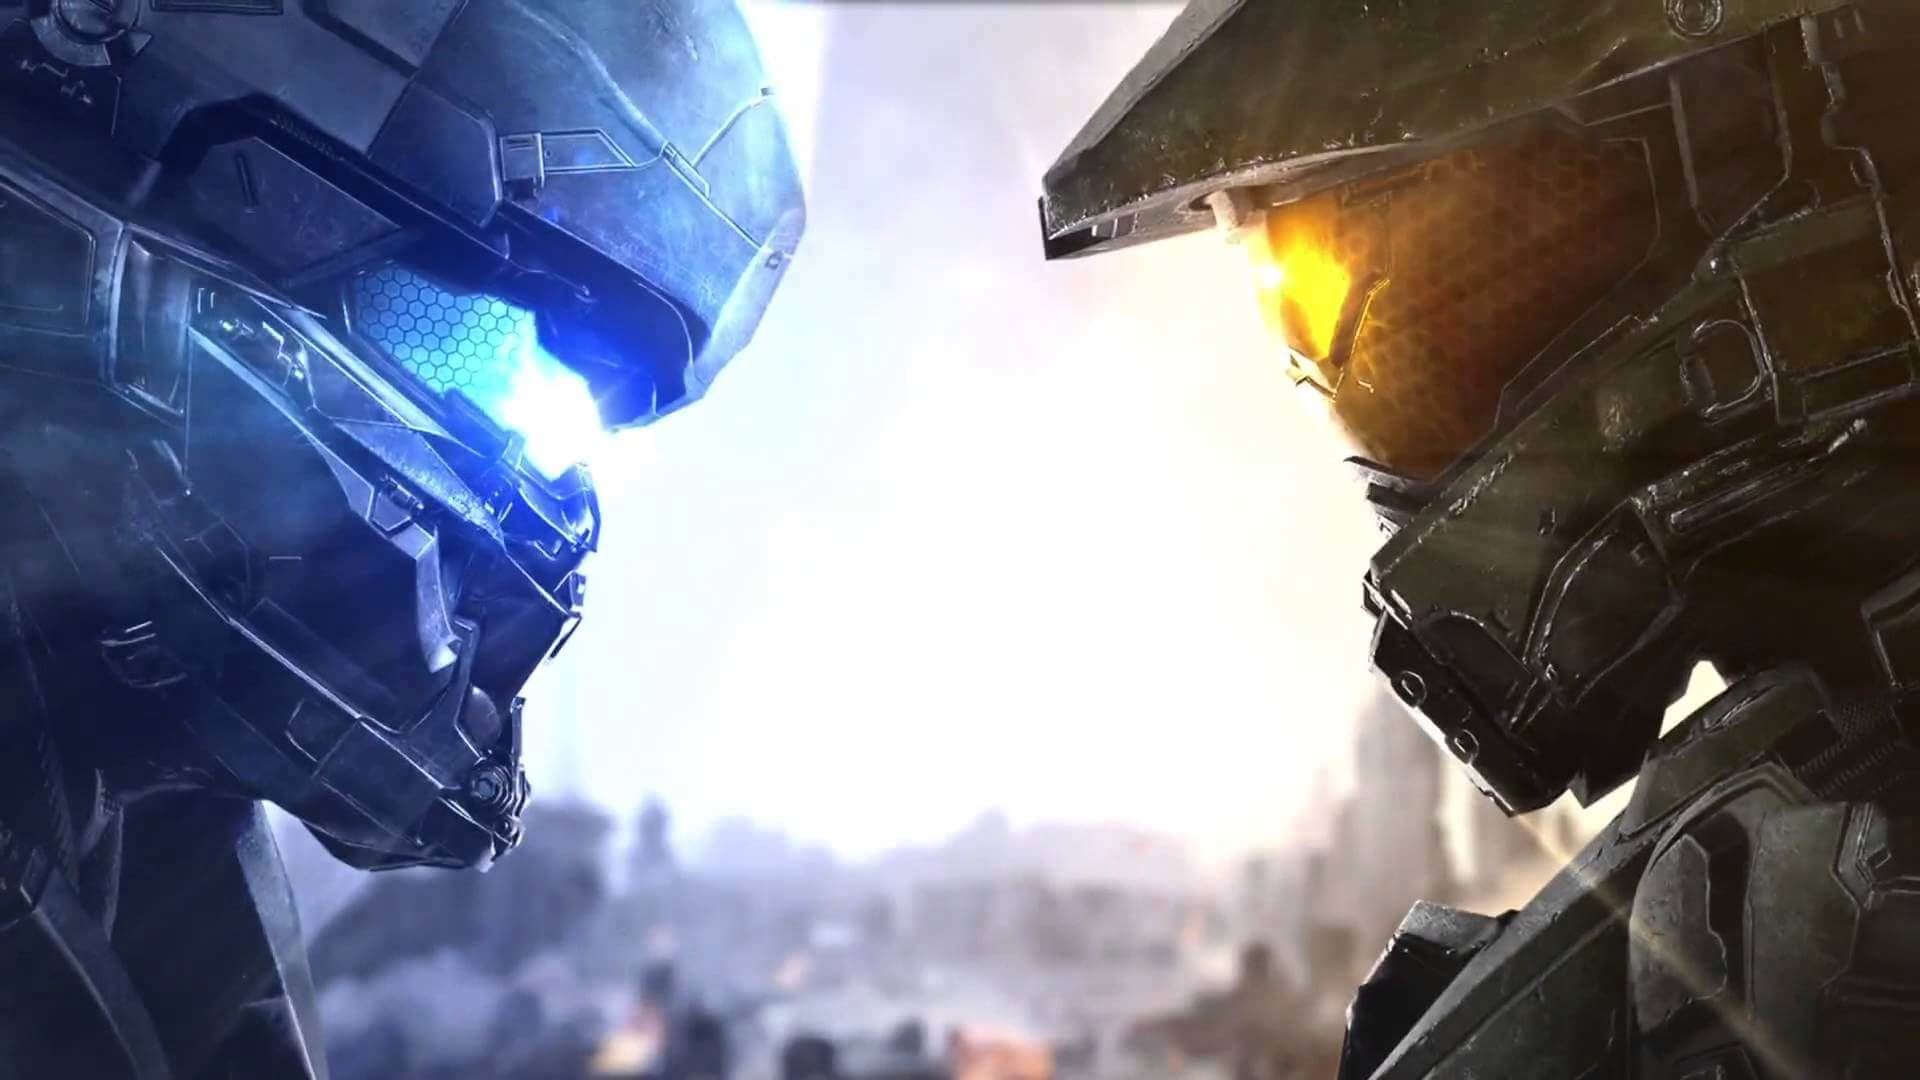 Last Chance To Get Halo 5 FREE